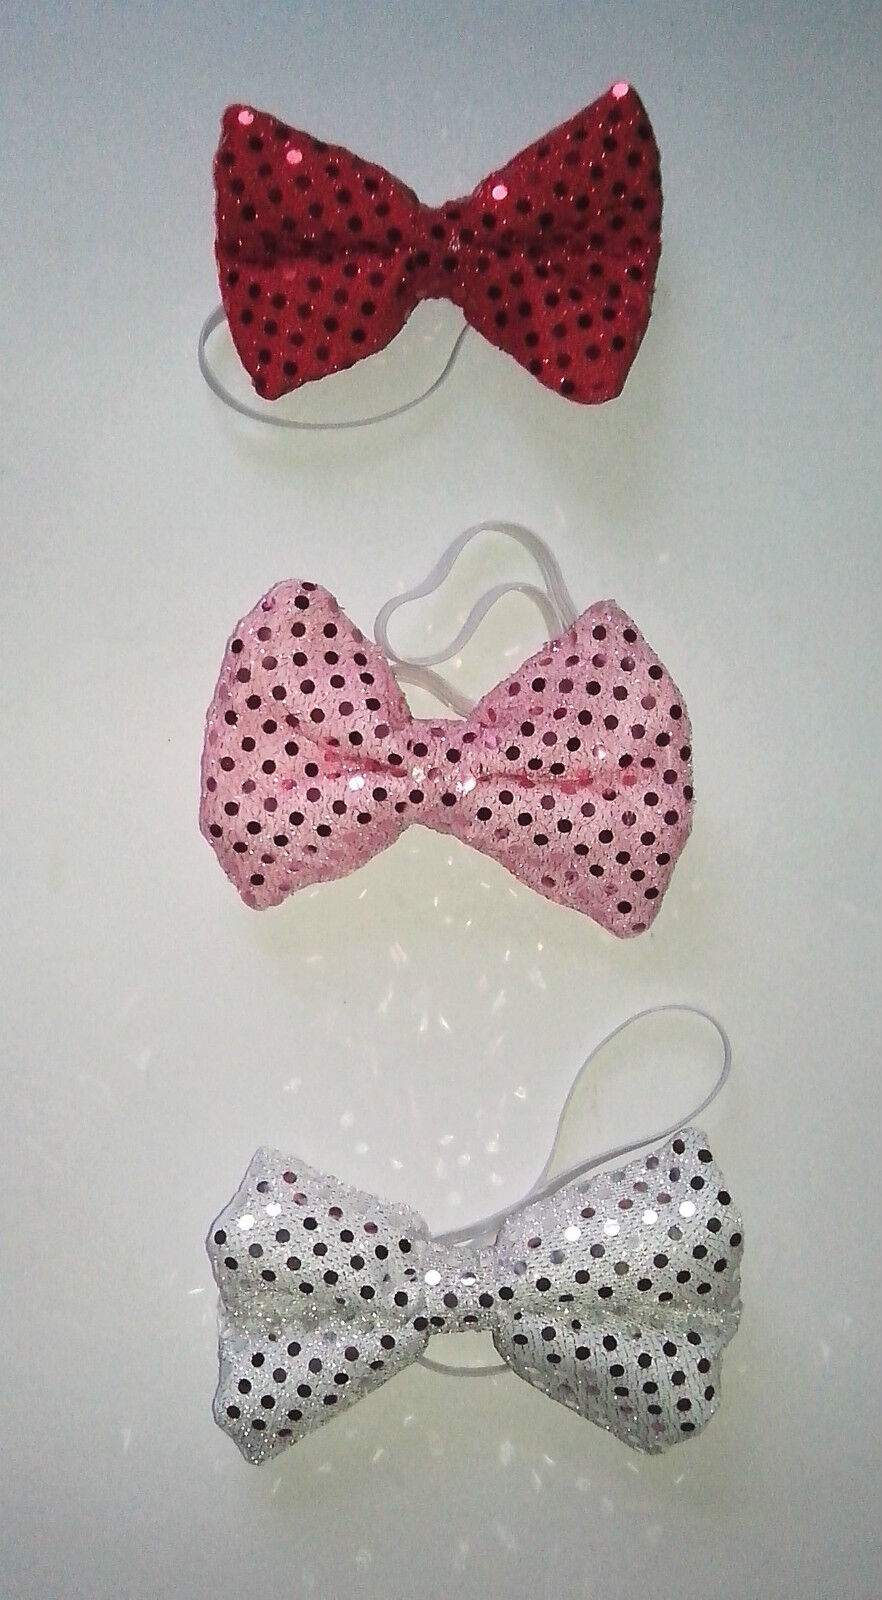 Sequin Material Bow Ties - Red, Pink and Silver Hand Made